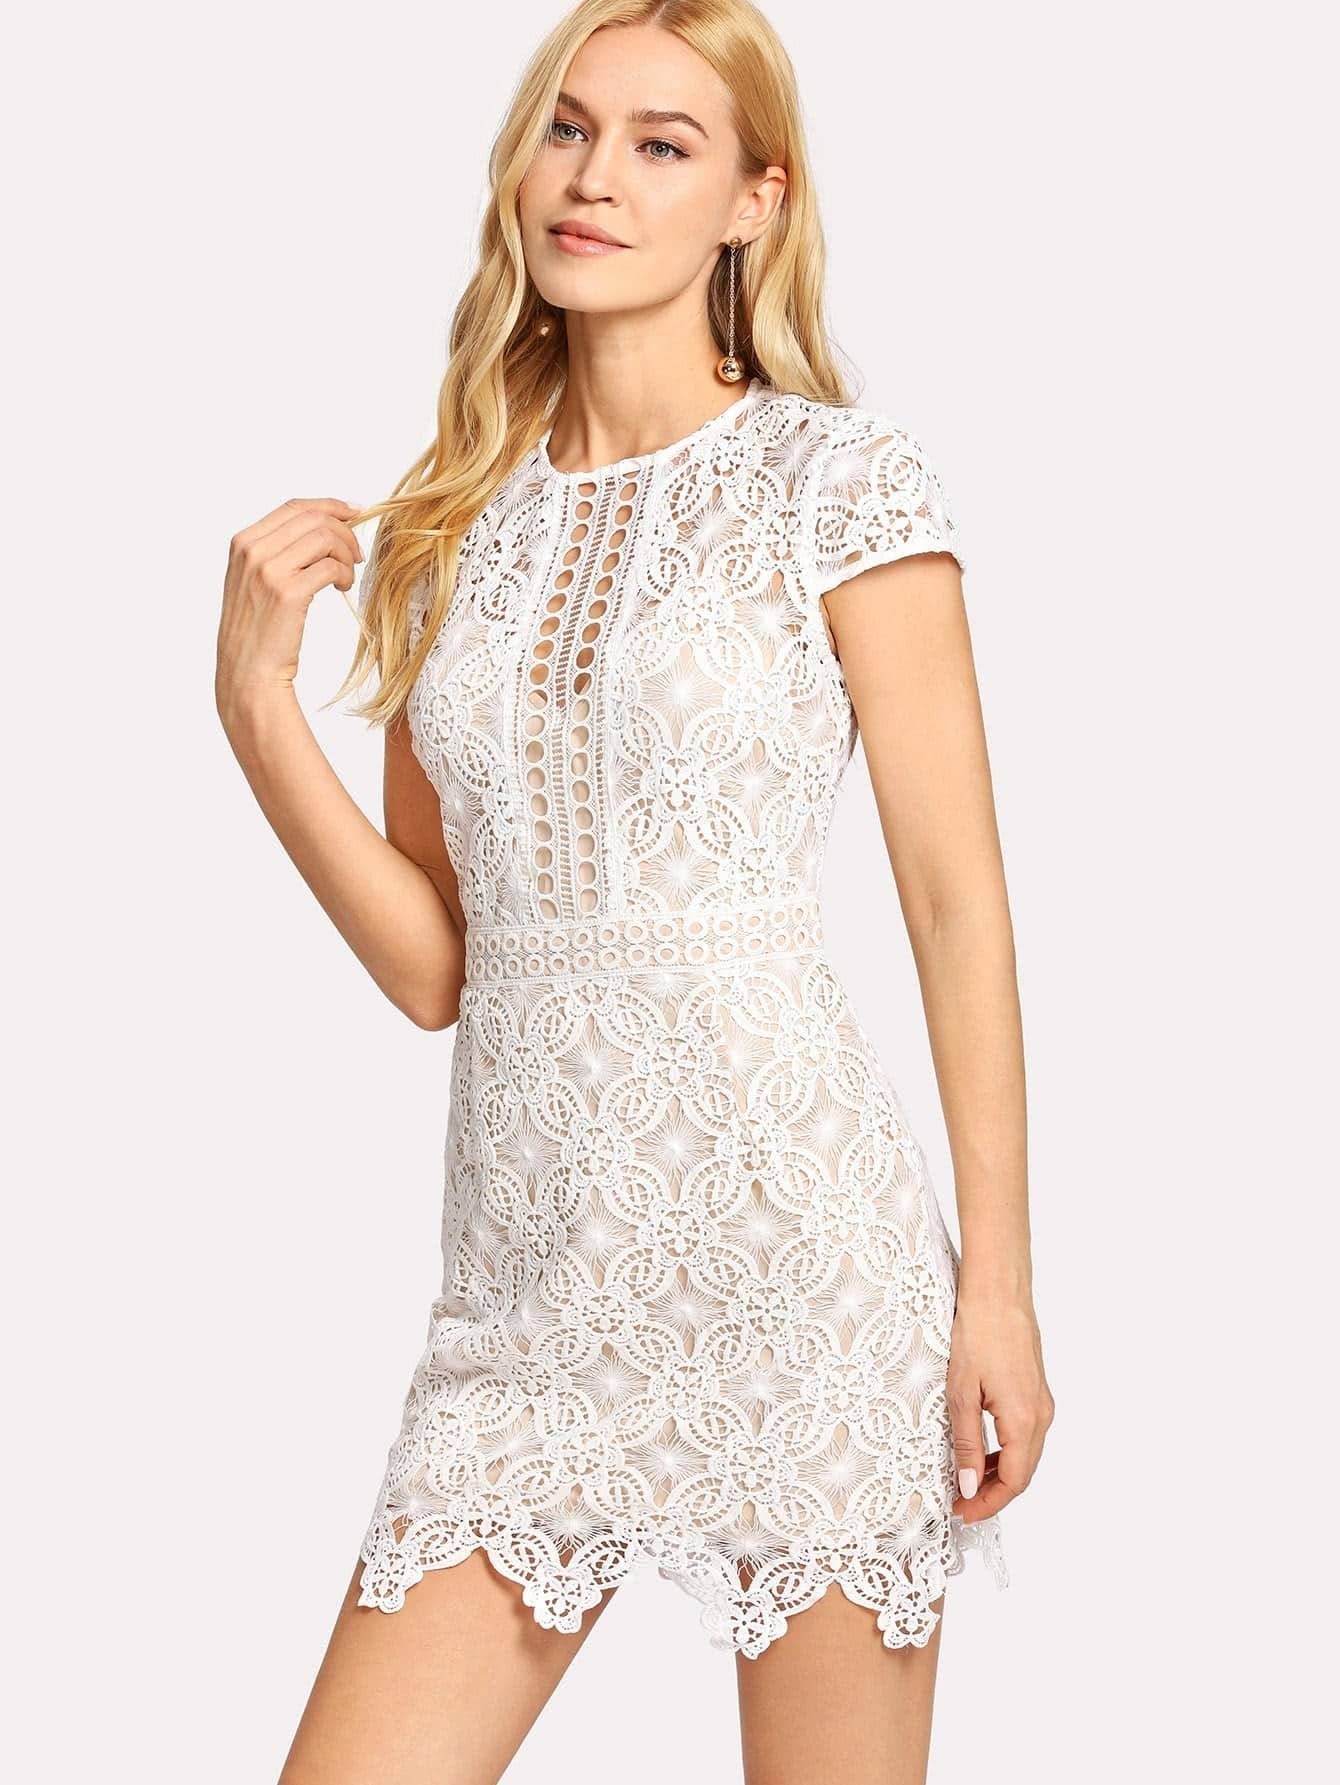 Guipure Lace Form Fitting Dress guipure lace form fitting dress